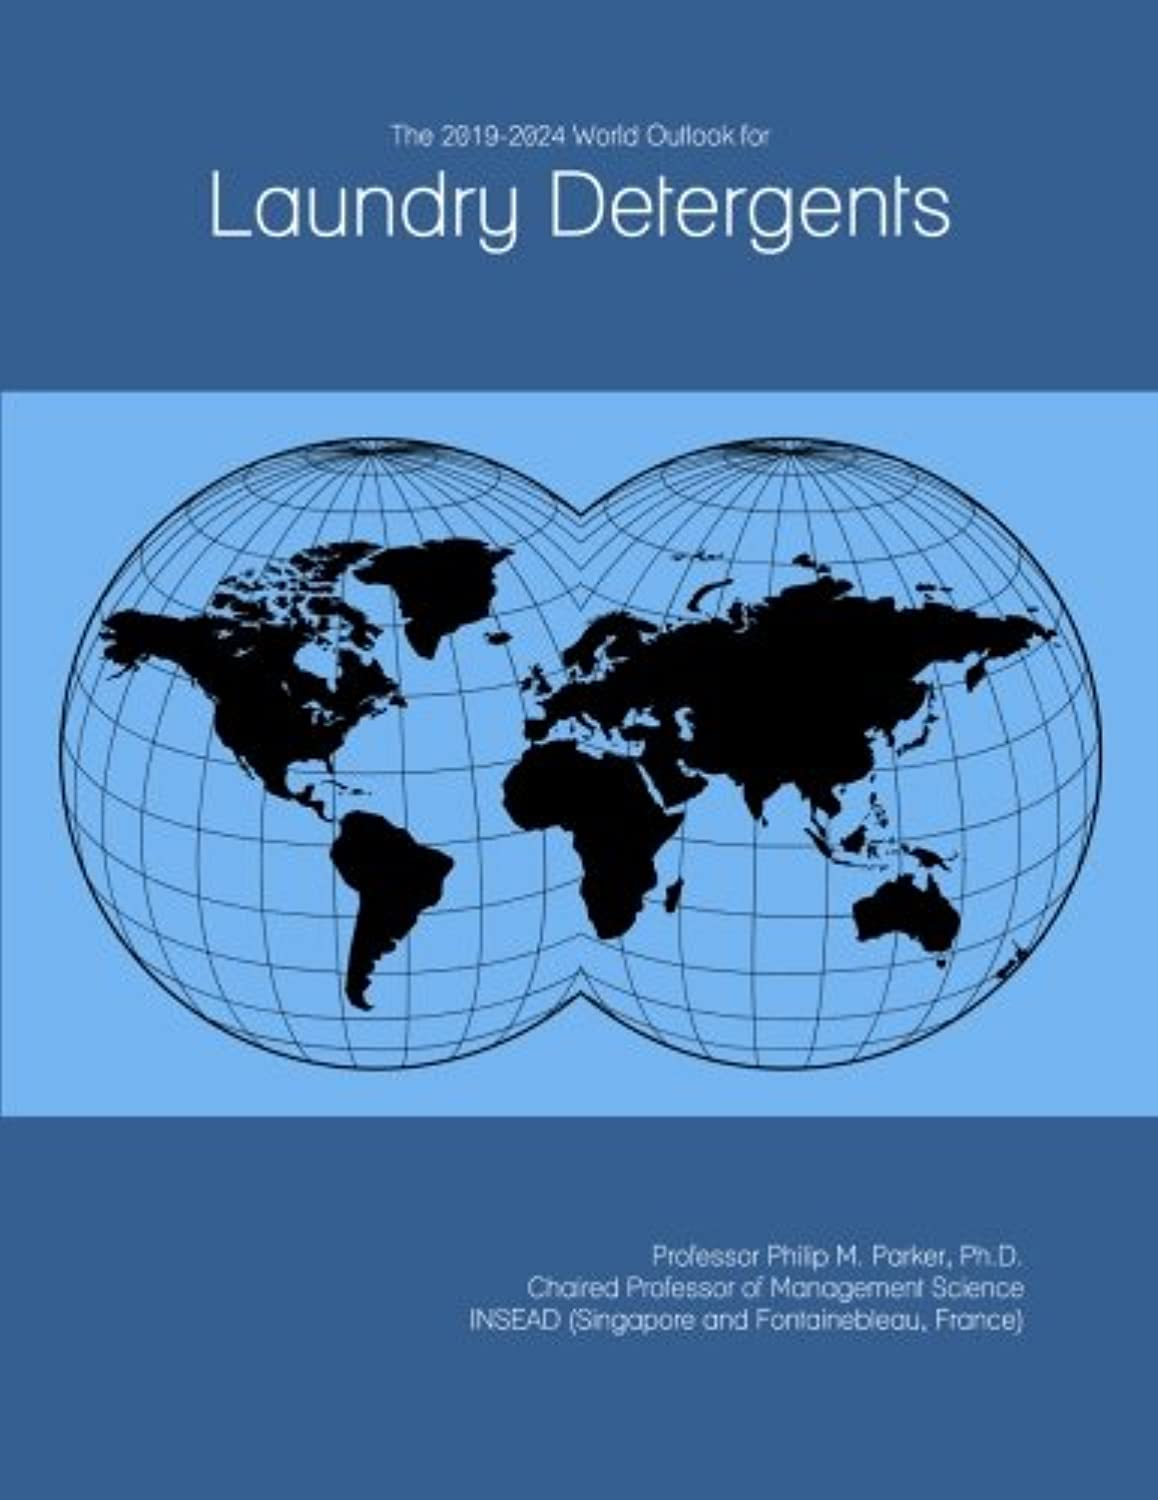 The 2019-2024 World Outlook for Laundry Detergents